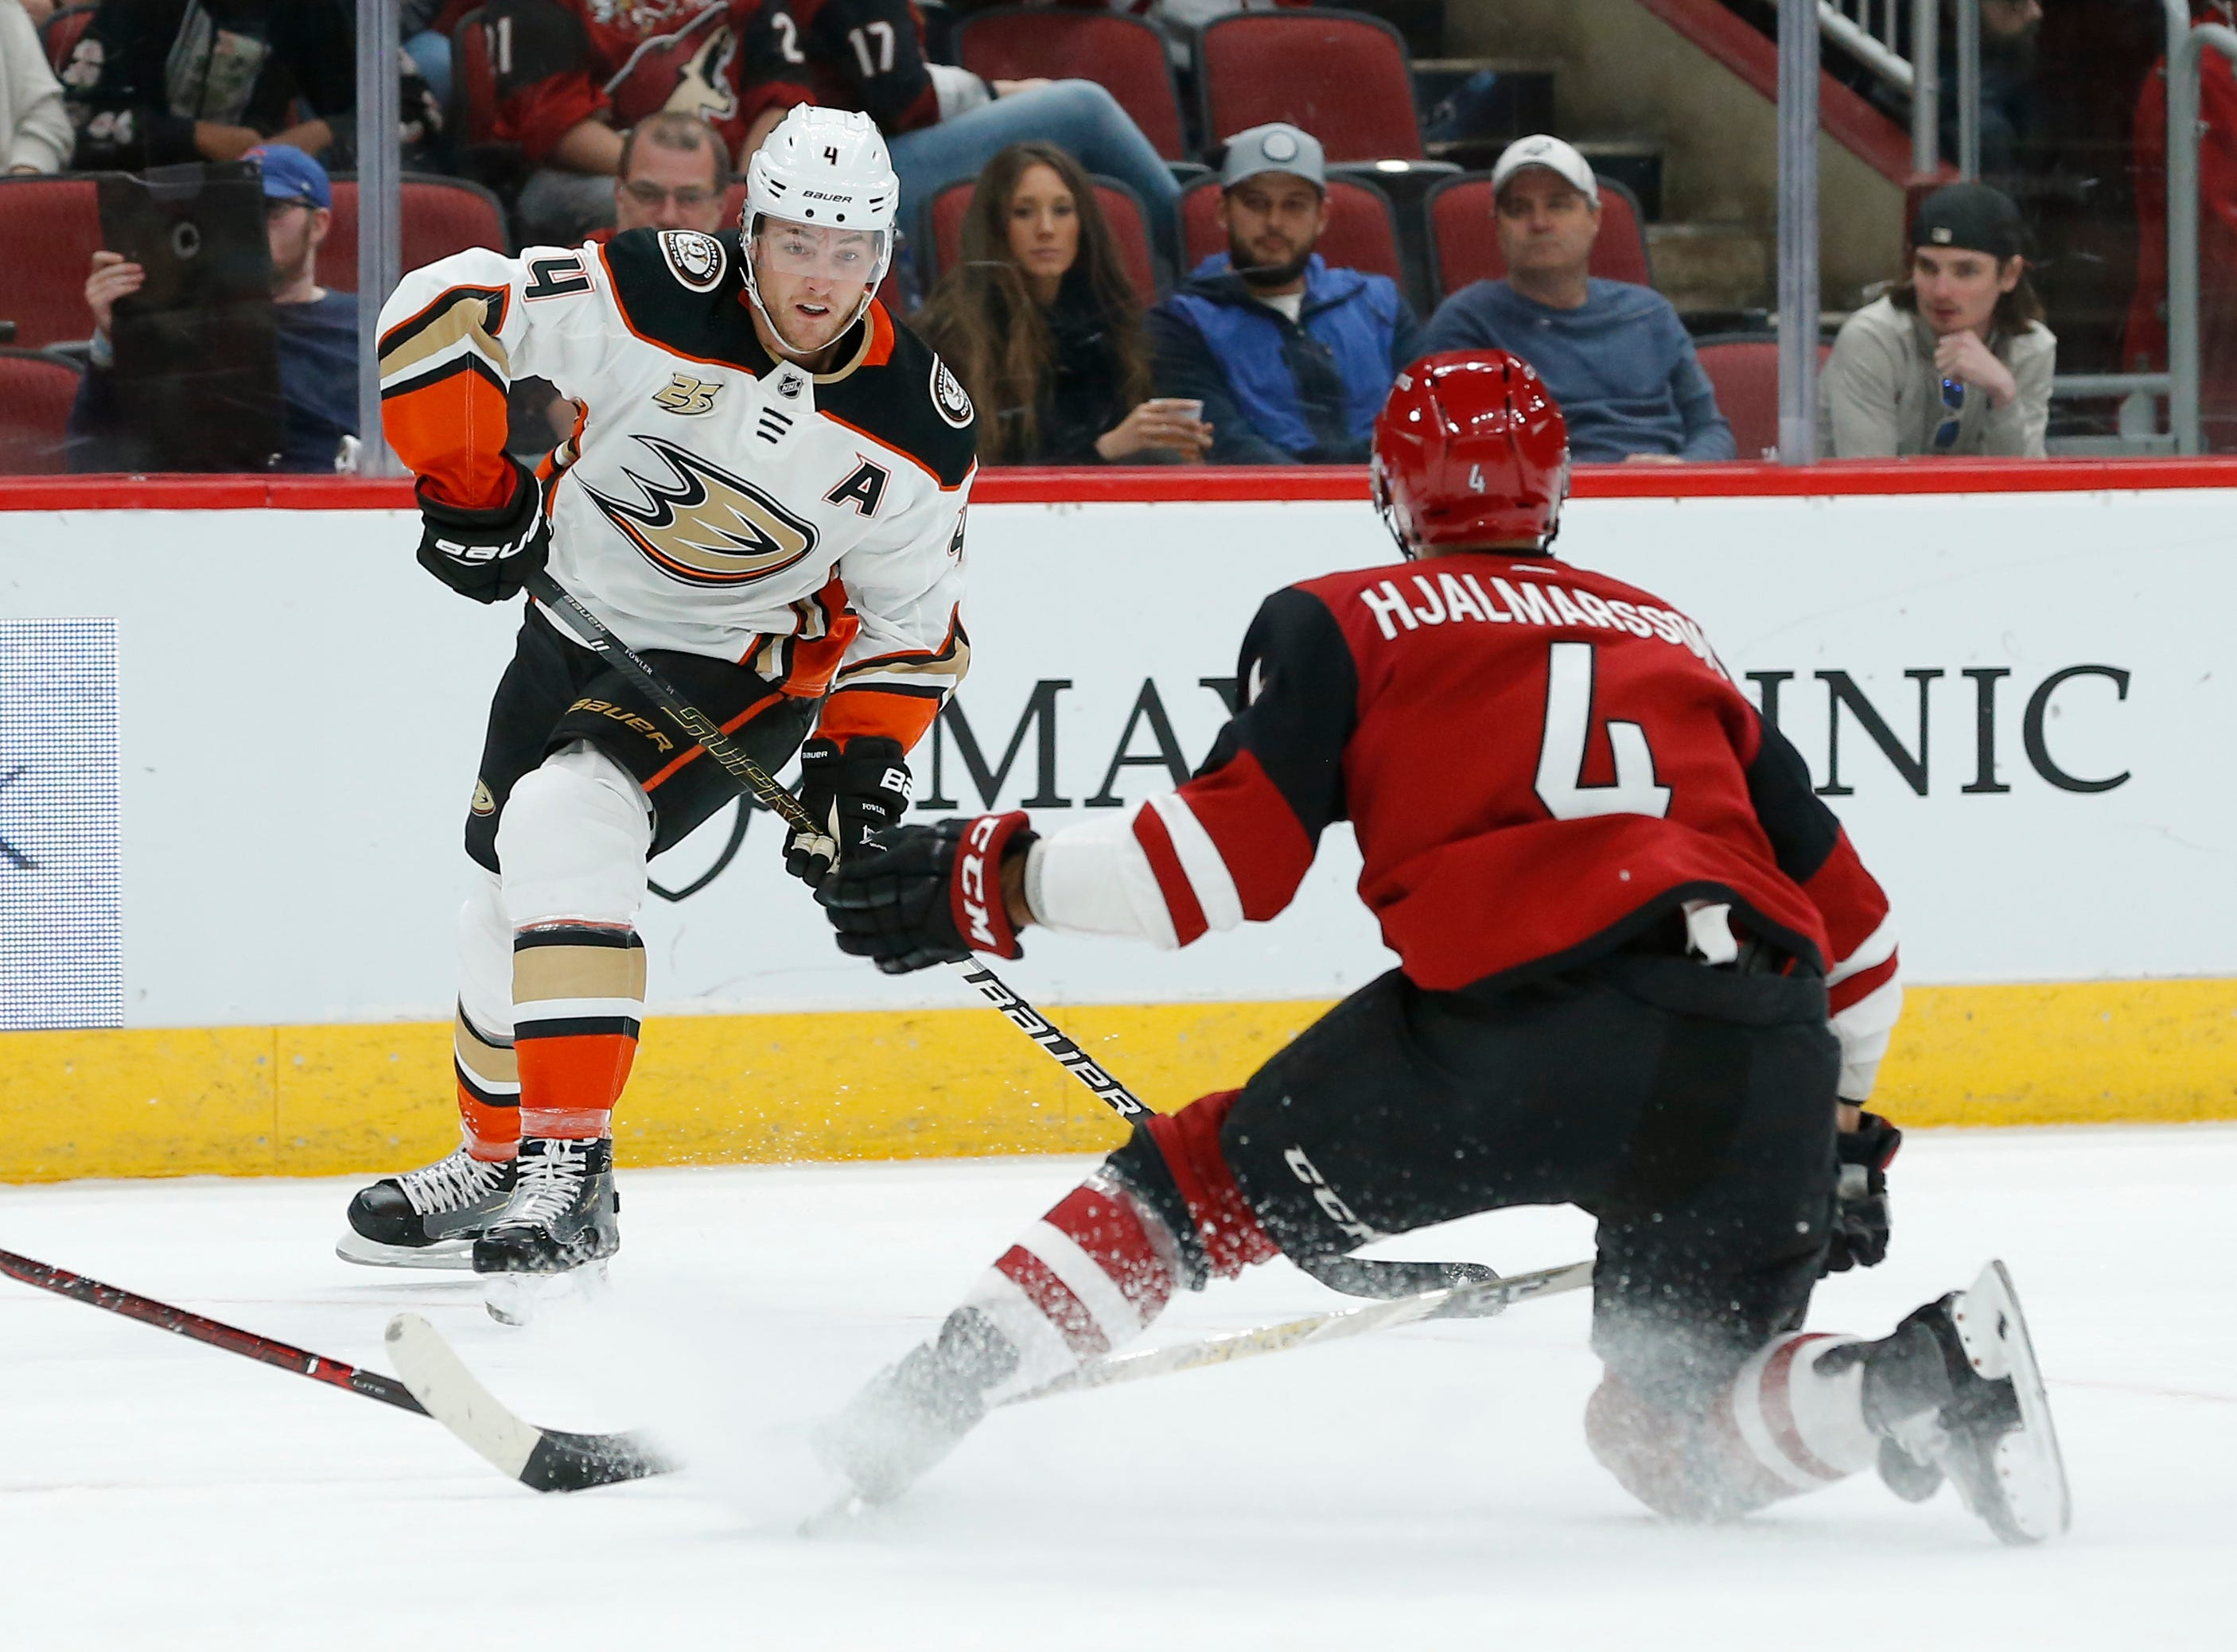 Anaheim Ducks defenseman Cam Fowler (4) shoots in front of Arizona Coyotes defenseman Niklas Hjalmarsson in the first period during an NHL hockey game, Thursday, March 14, 2019, in Glendale, Ariz.